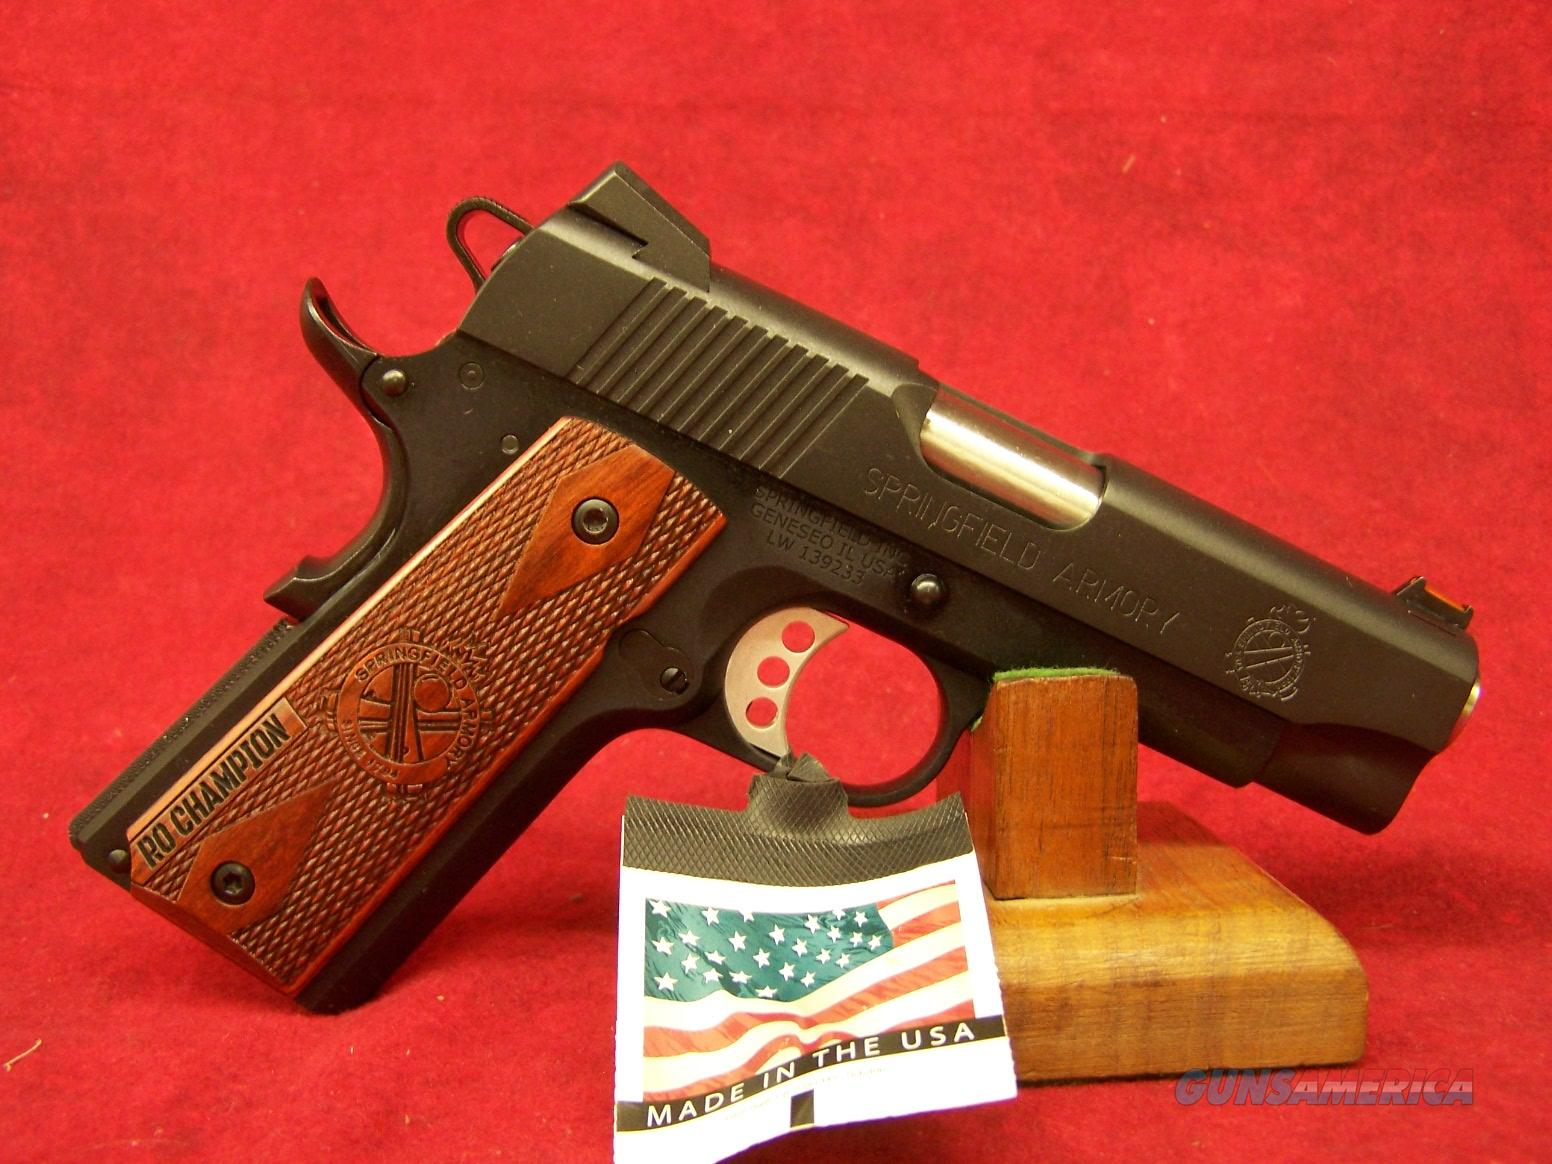 Springfield Armory 1911 Lightweight Compact Range Officer .45ACP (PI9136LP)   Guns > Pistols > Springfield Armory Pistols > 1911 Type